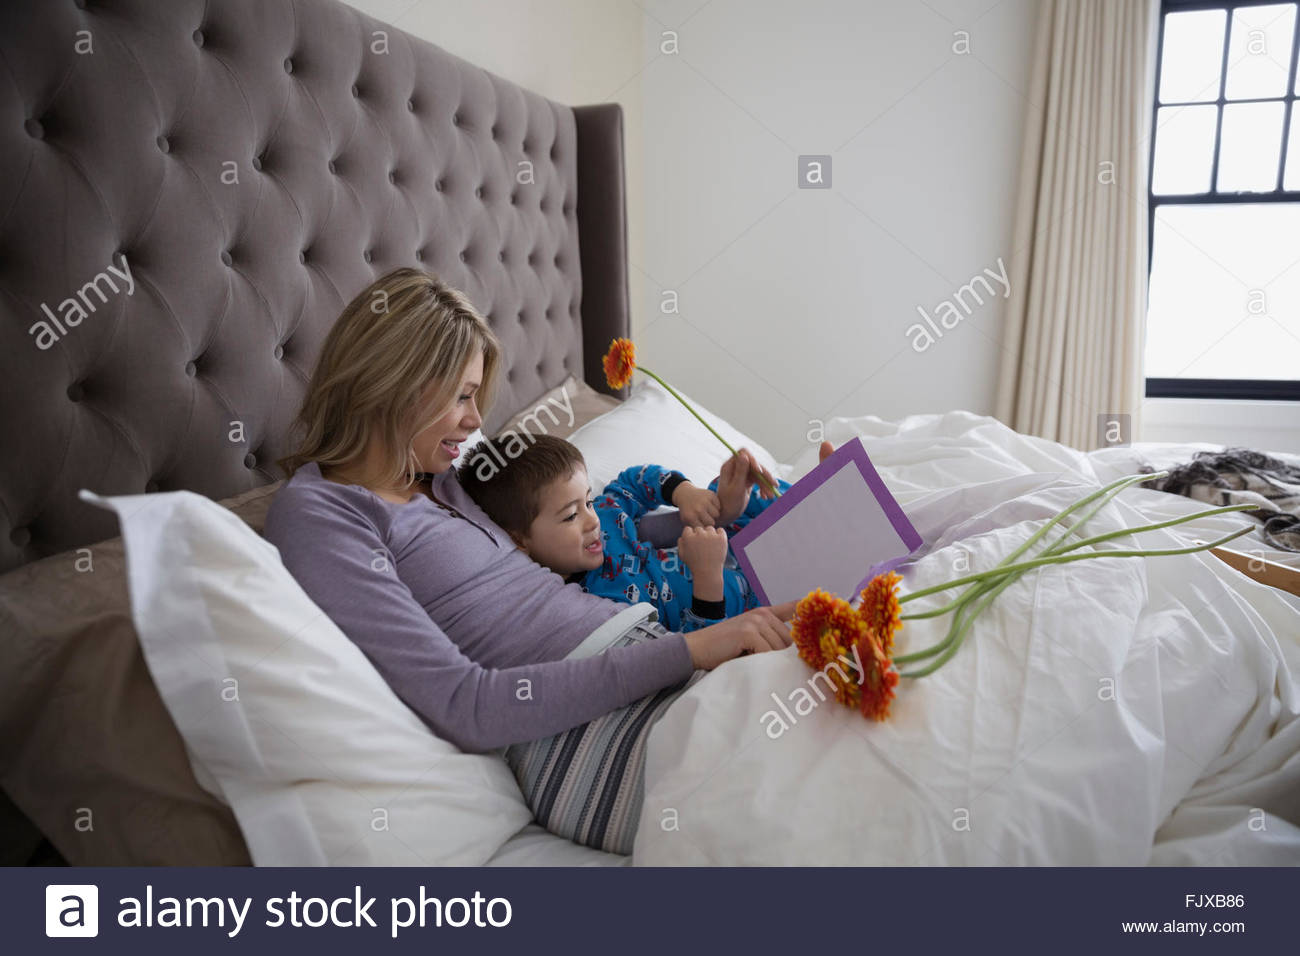 son giving mother mothers day card bed 30-34 - Stock Image